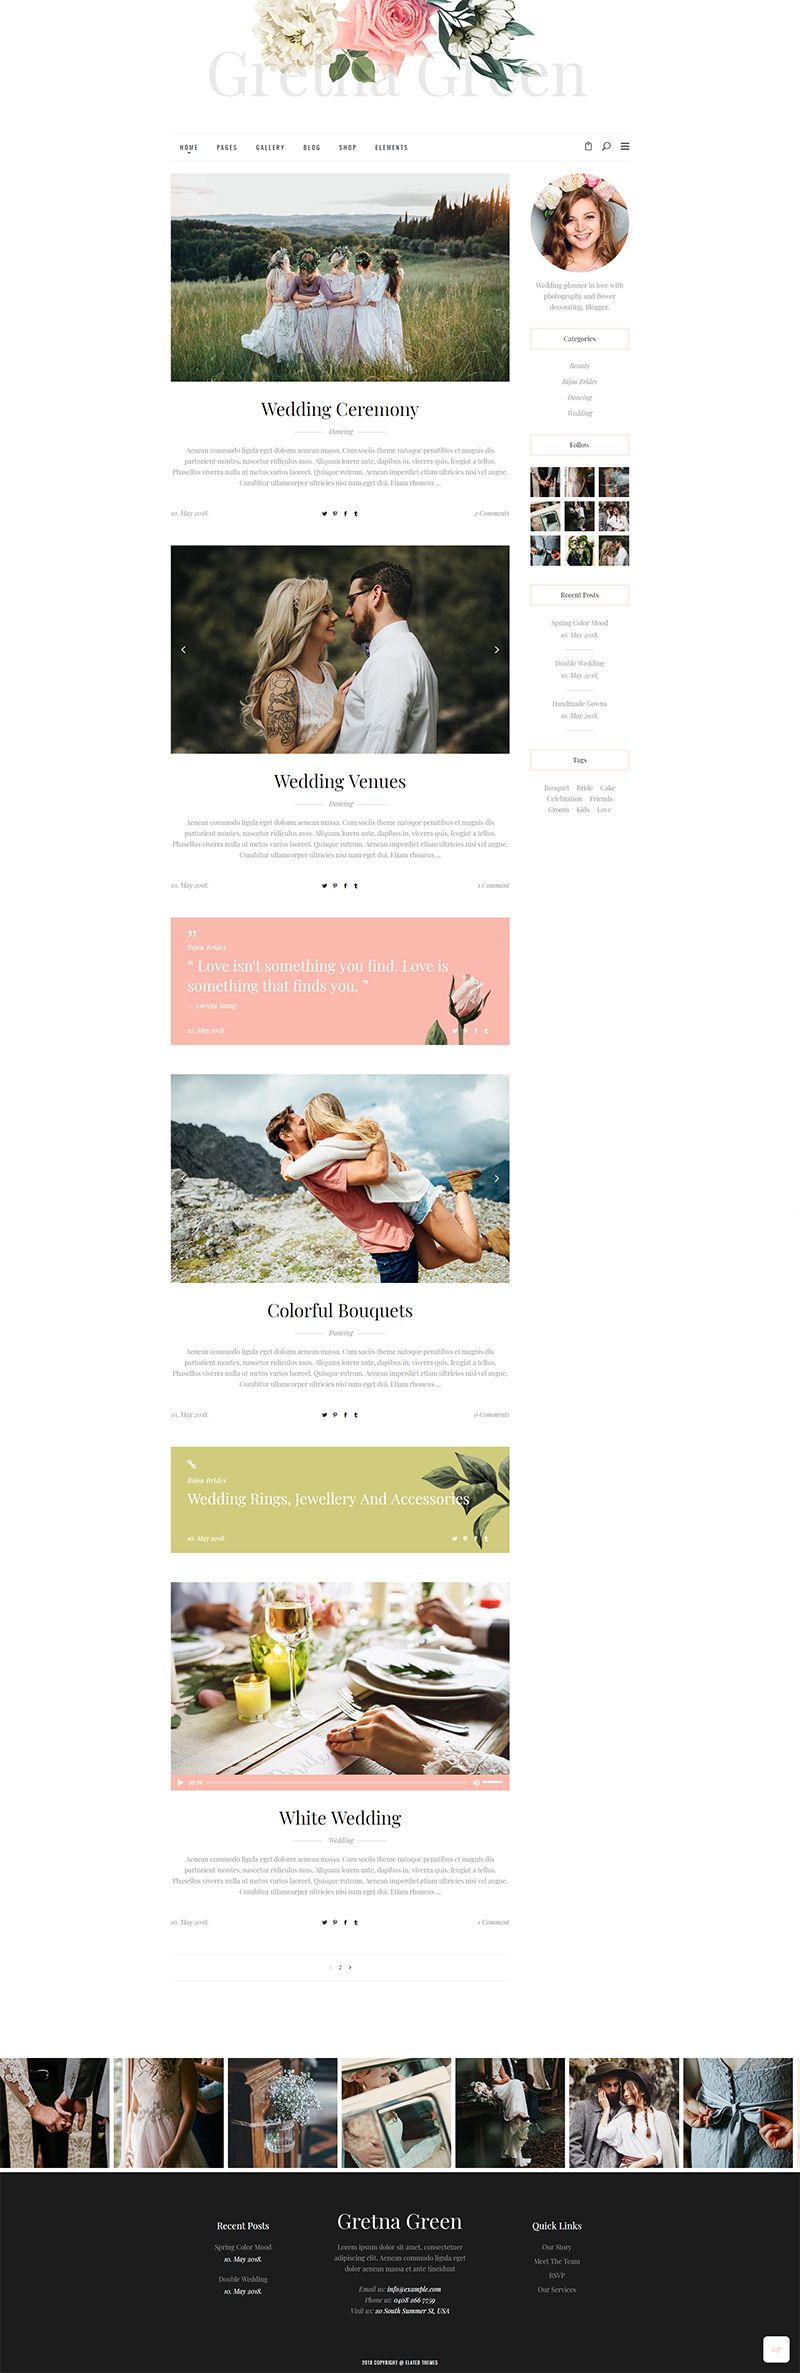 Say I Do To Website Perfection With Gretna Green A Wordpress Theme For Wedding Planners And Celebration Green Themed Wedding Gretna Green Gretna Green Wedding